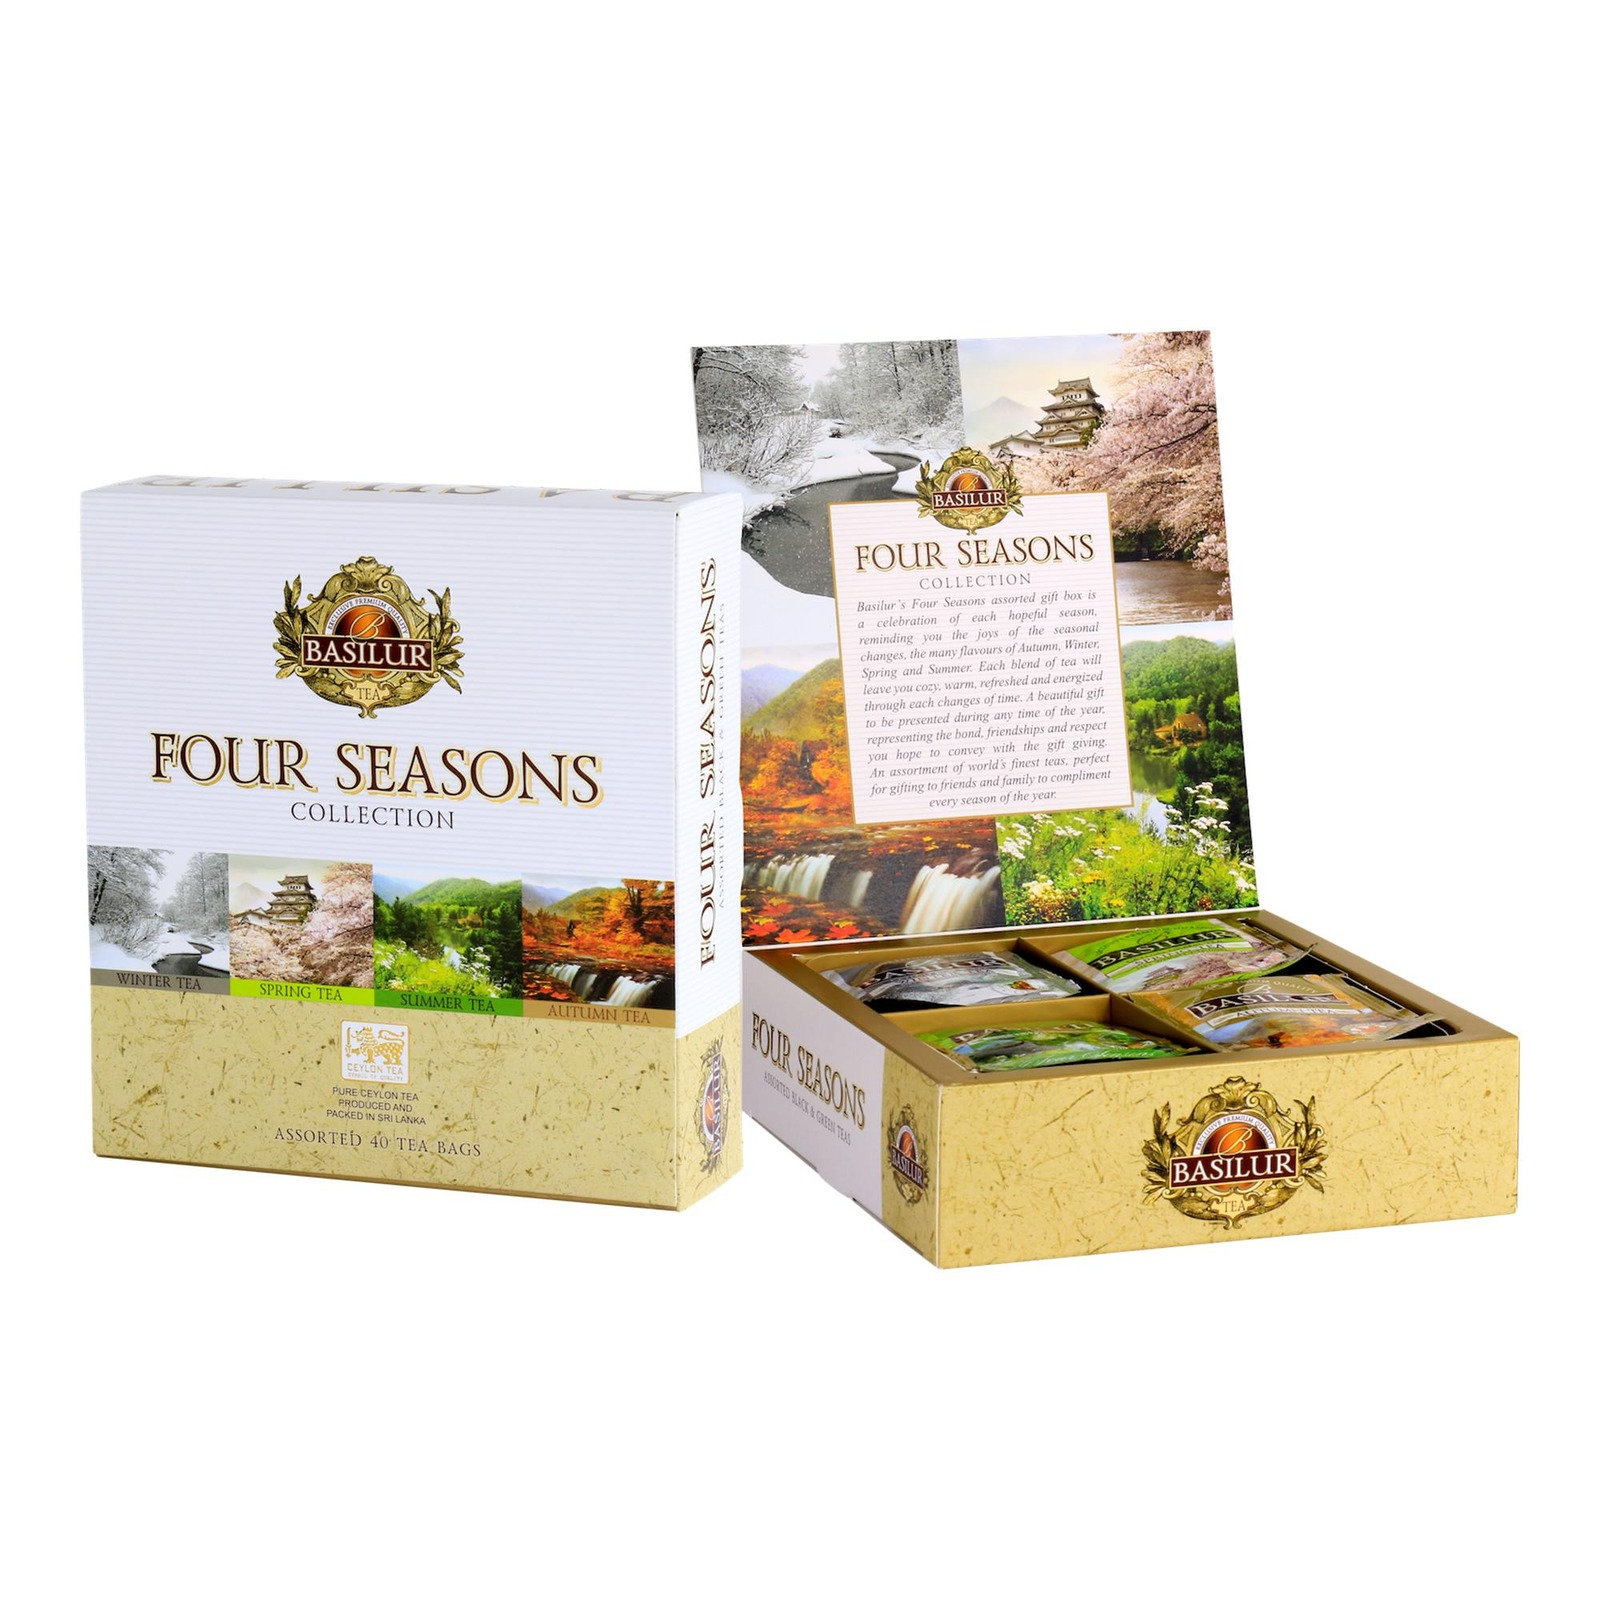 Basilur Four Seasons Assorted Tea Sachets Gift Box